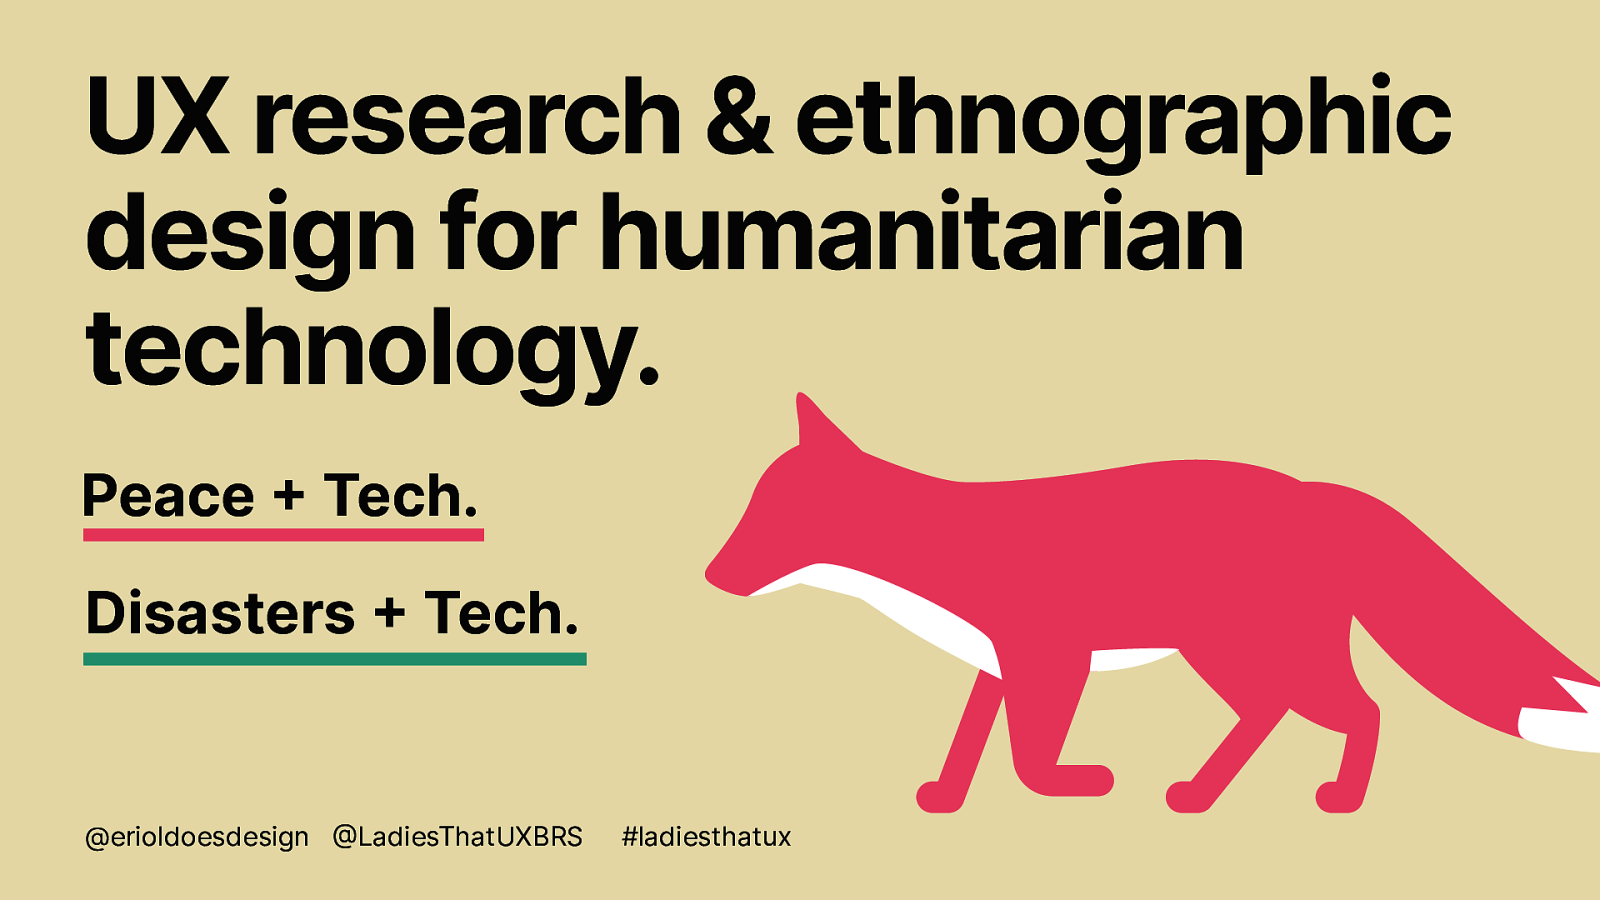 UX research & ethnographic design for humanitarian technology.